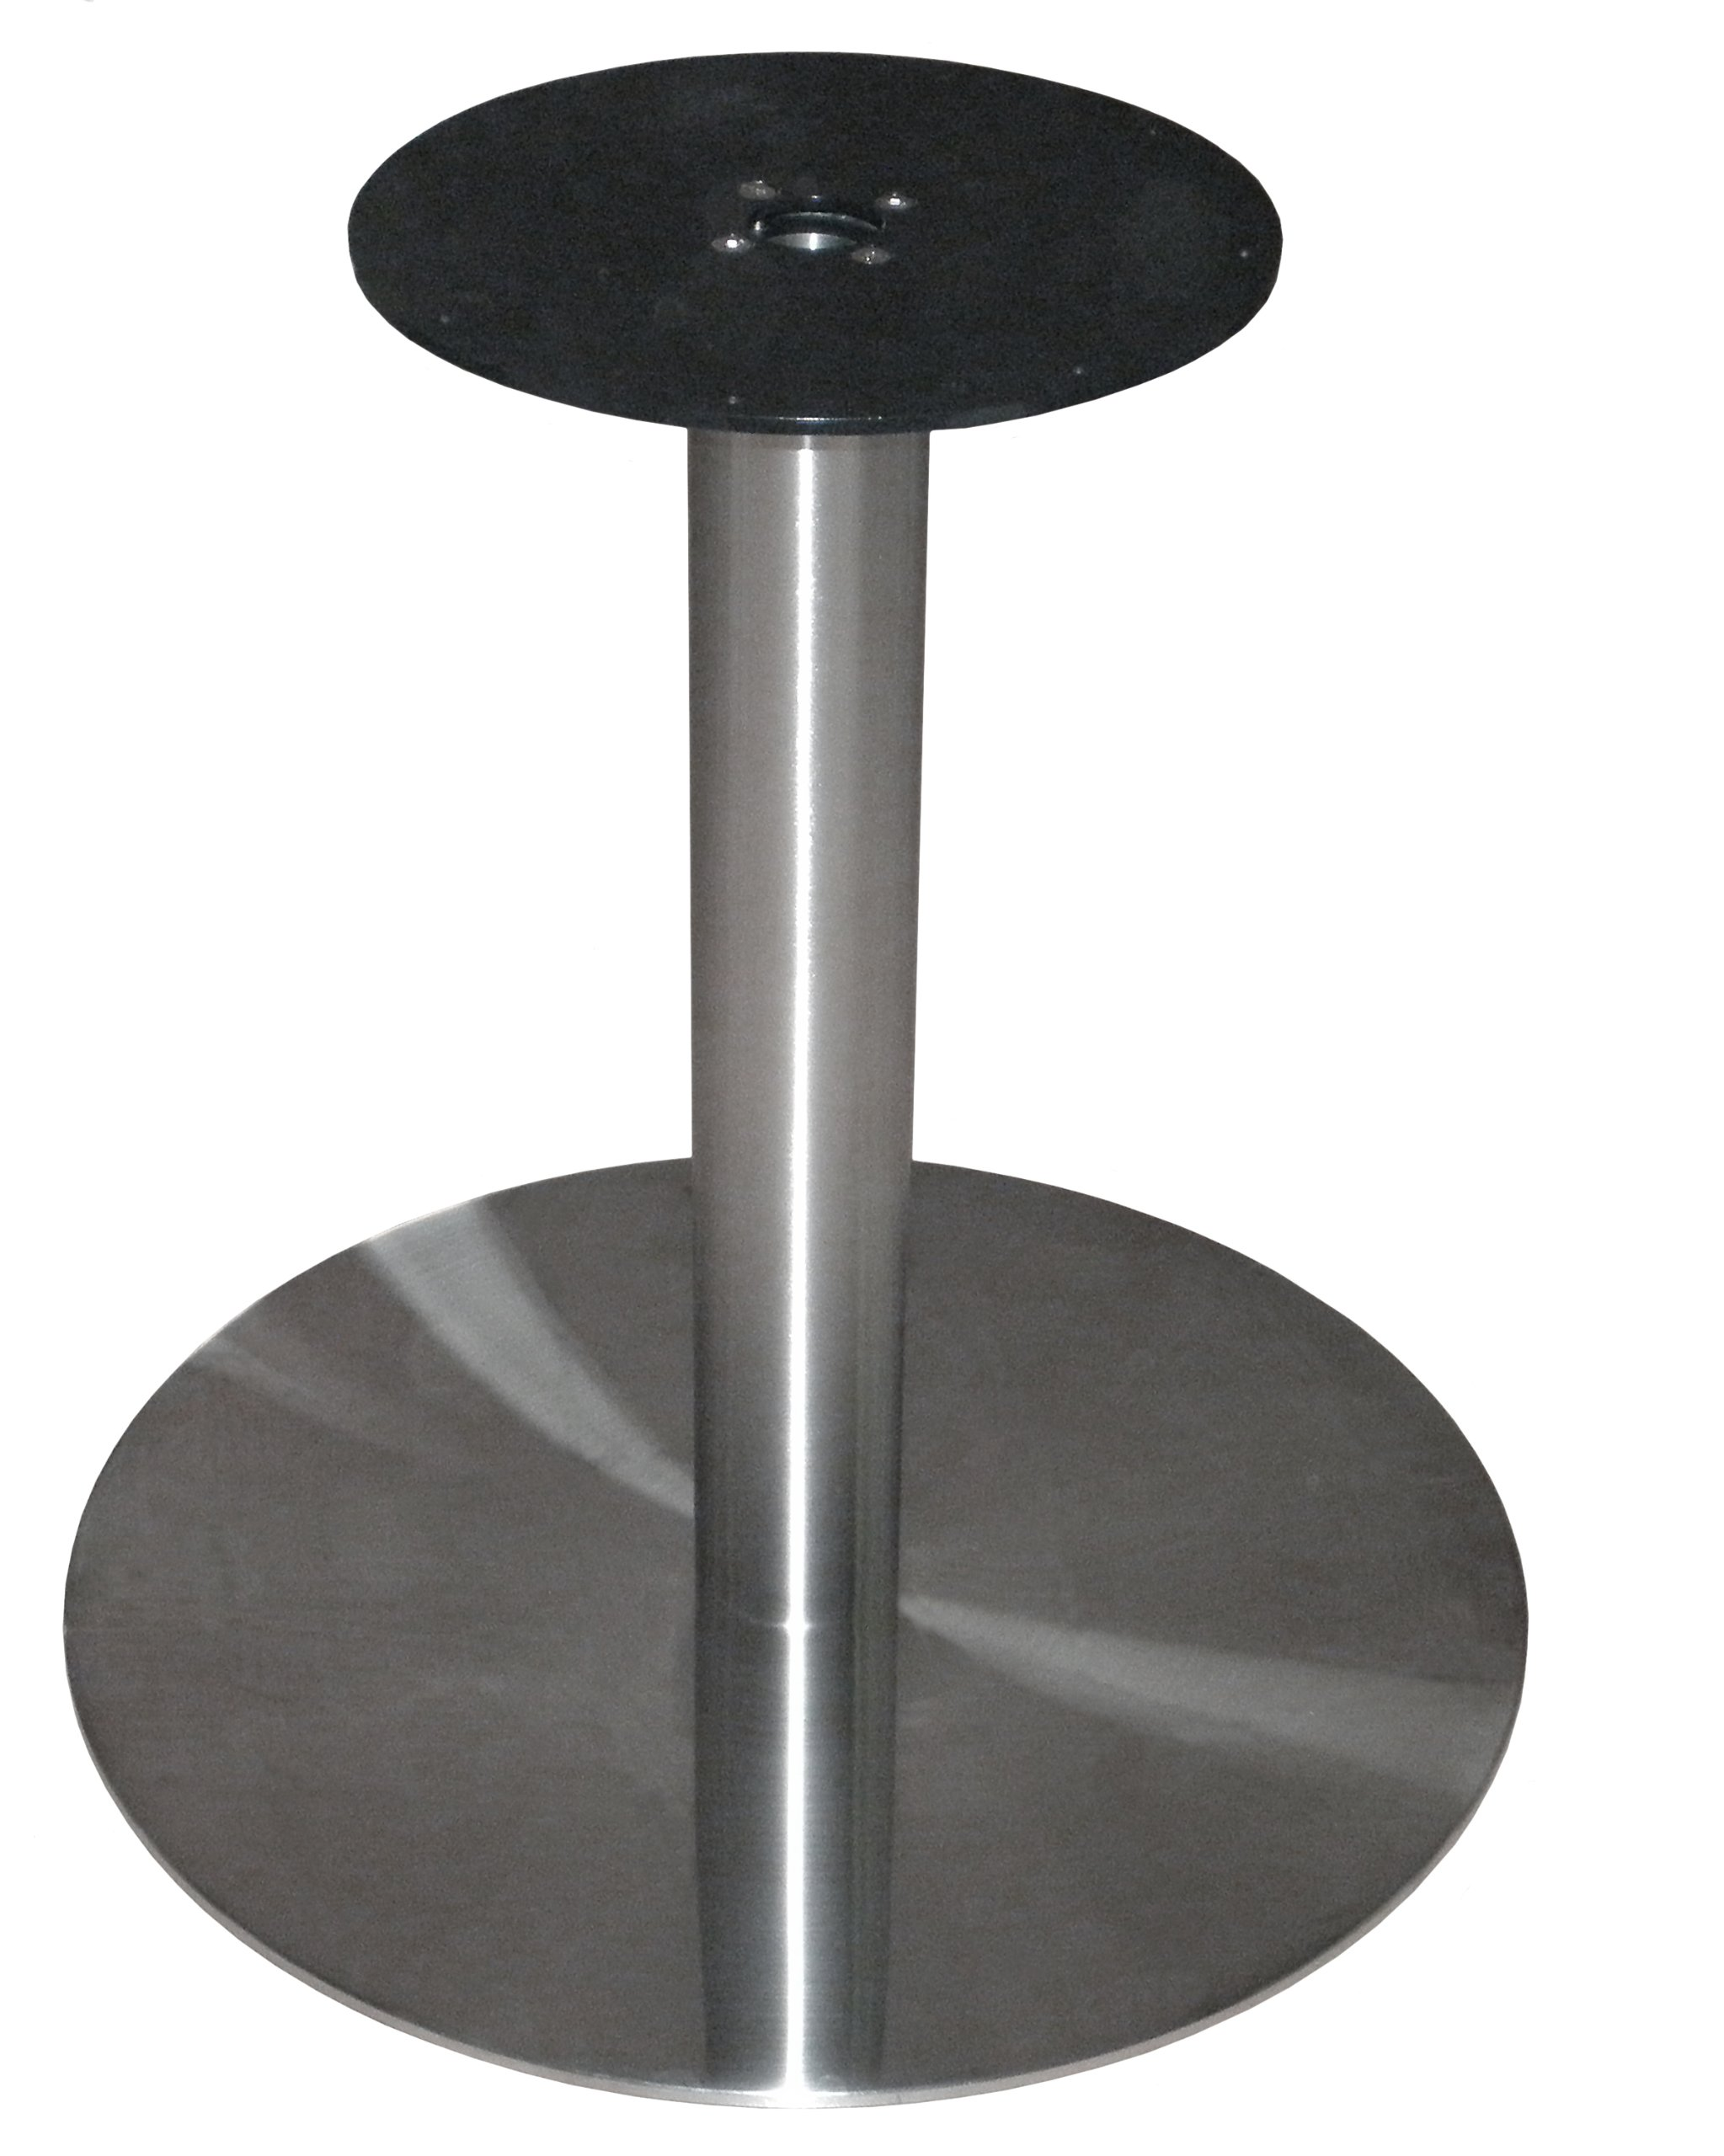 ATC Futura Round Powder-Coated Stainless Steel Low Profile Table Base, 28'' Base D x 28-1/2'' H